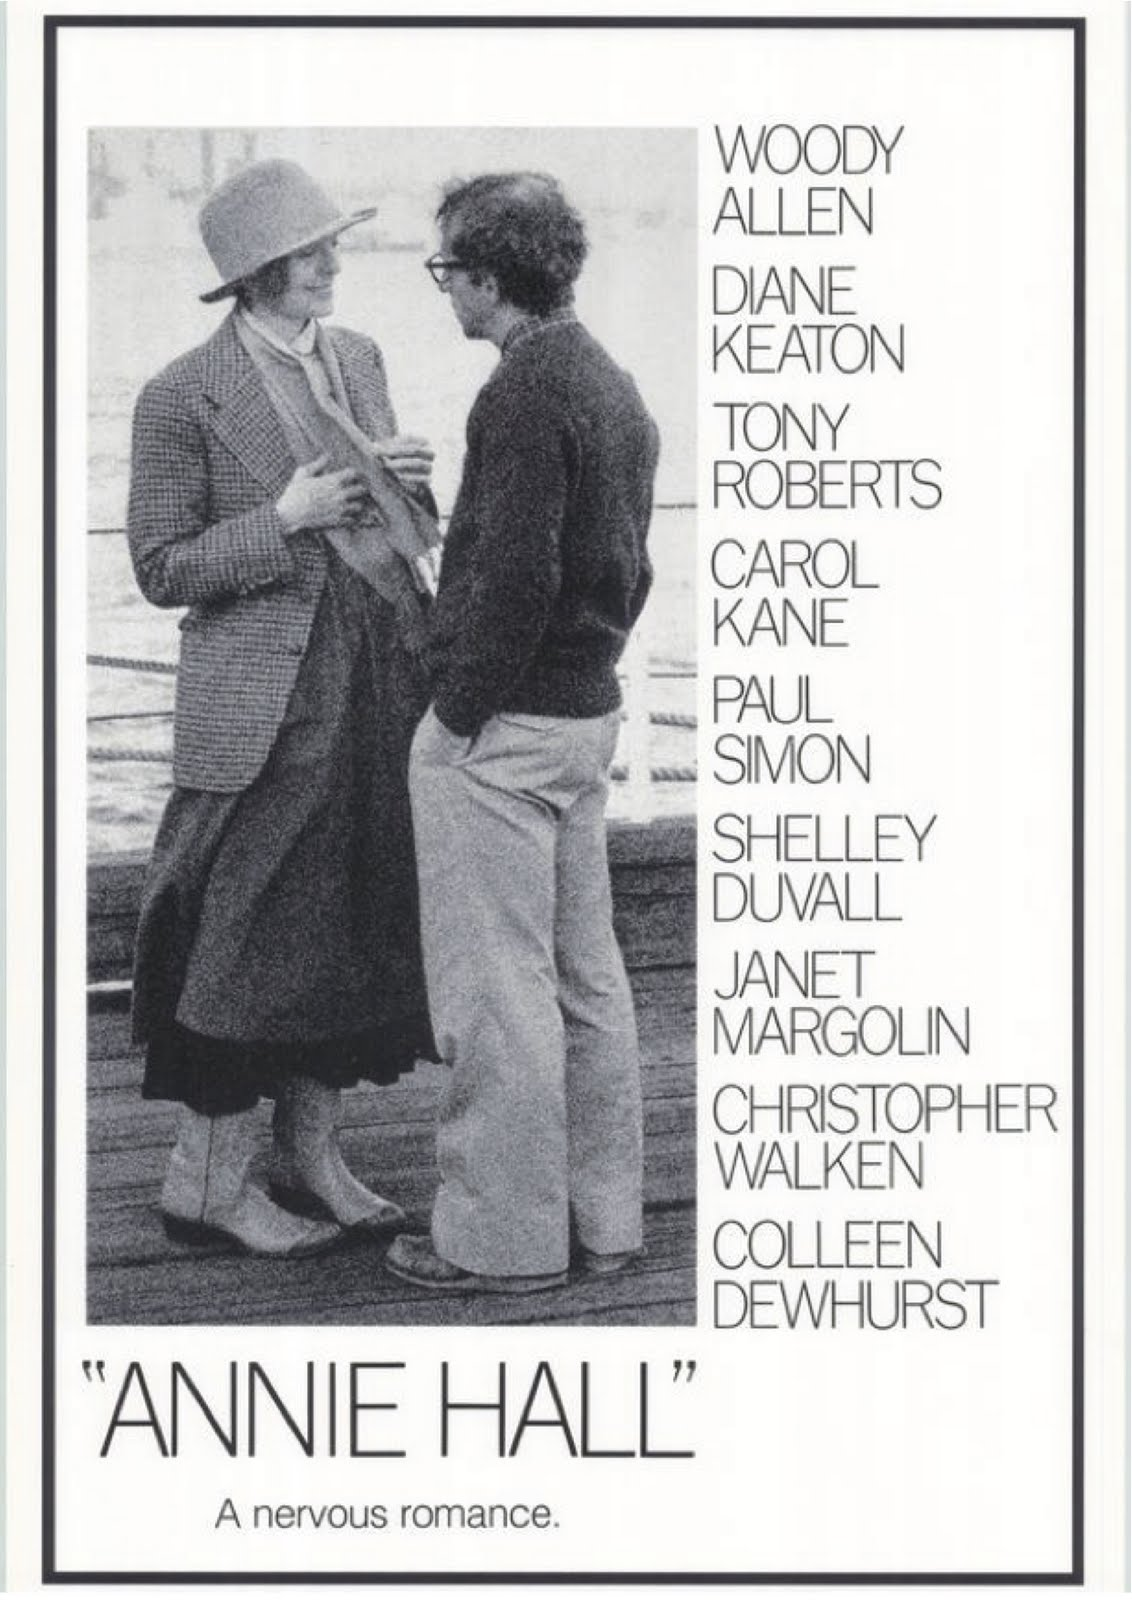 annie hall and manhattan two different Another very interesting part is diane keaton is in both manhattan and annie hall, and in both, she has a relationship with woody allen however, this happens over the whole span of annie hall, rather than only a small portion of manhattan.